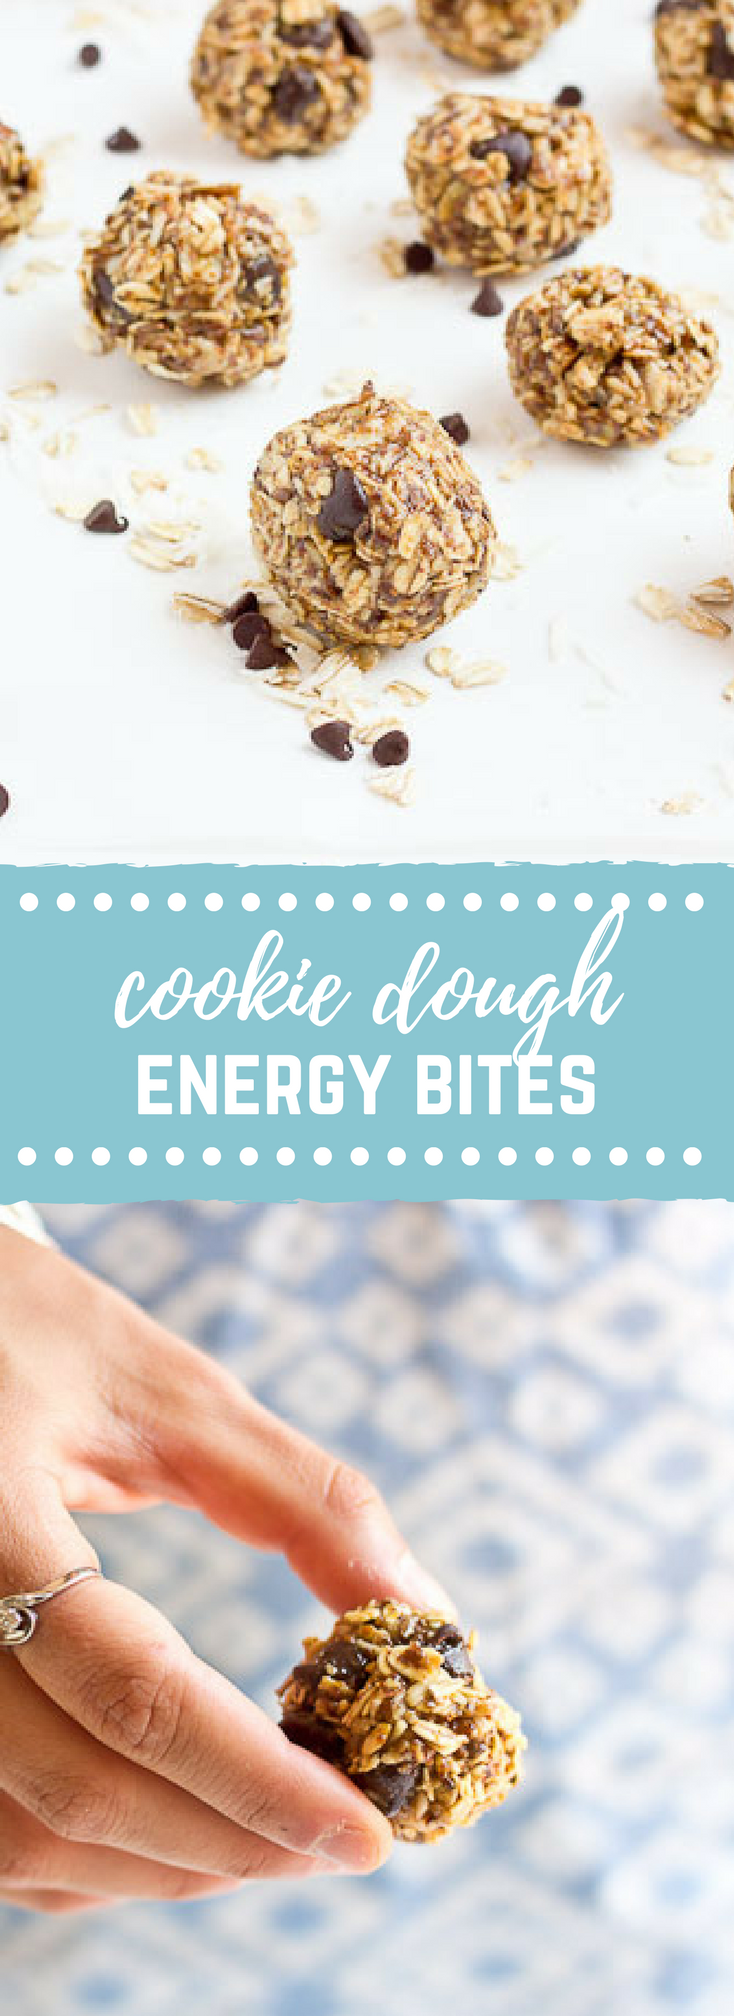 These Cookie Dough Energy Bites are exactly what you need right now!! They cure that sweet tooth and are less expensive than pre-made energy bars. Easy to make and gluten free.